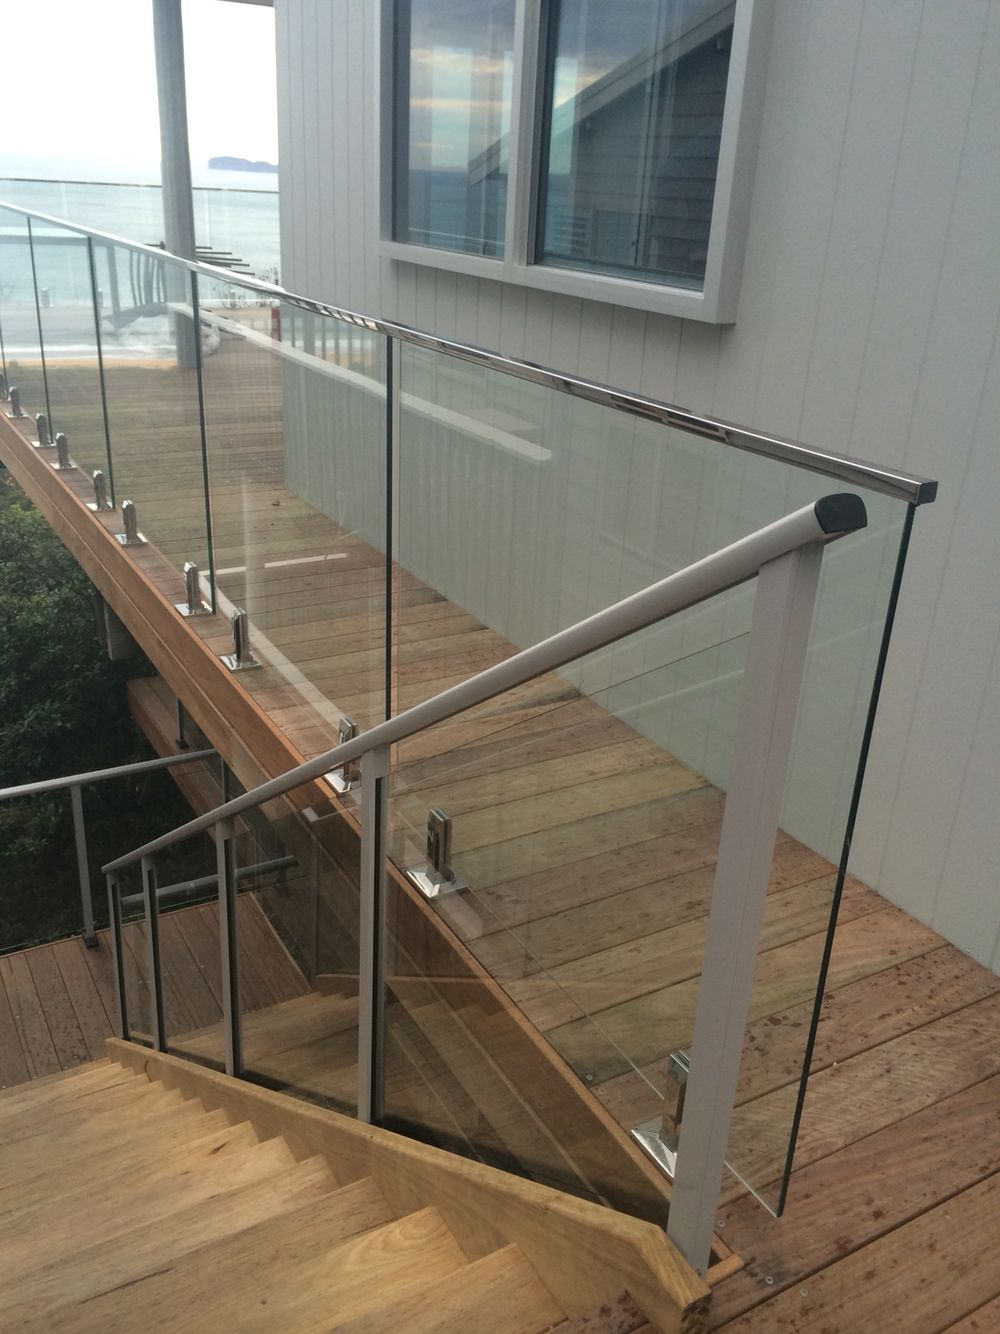 Glass Balustrade On Deck Going Down Stairs Glass Stair Balustrade Glass Balustrade Glass Stairs